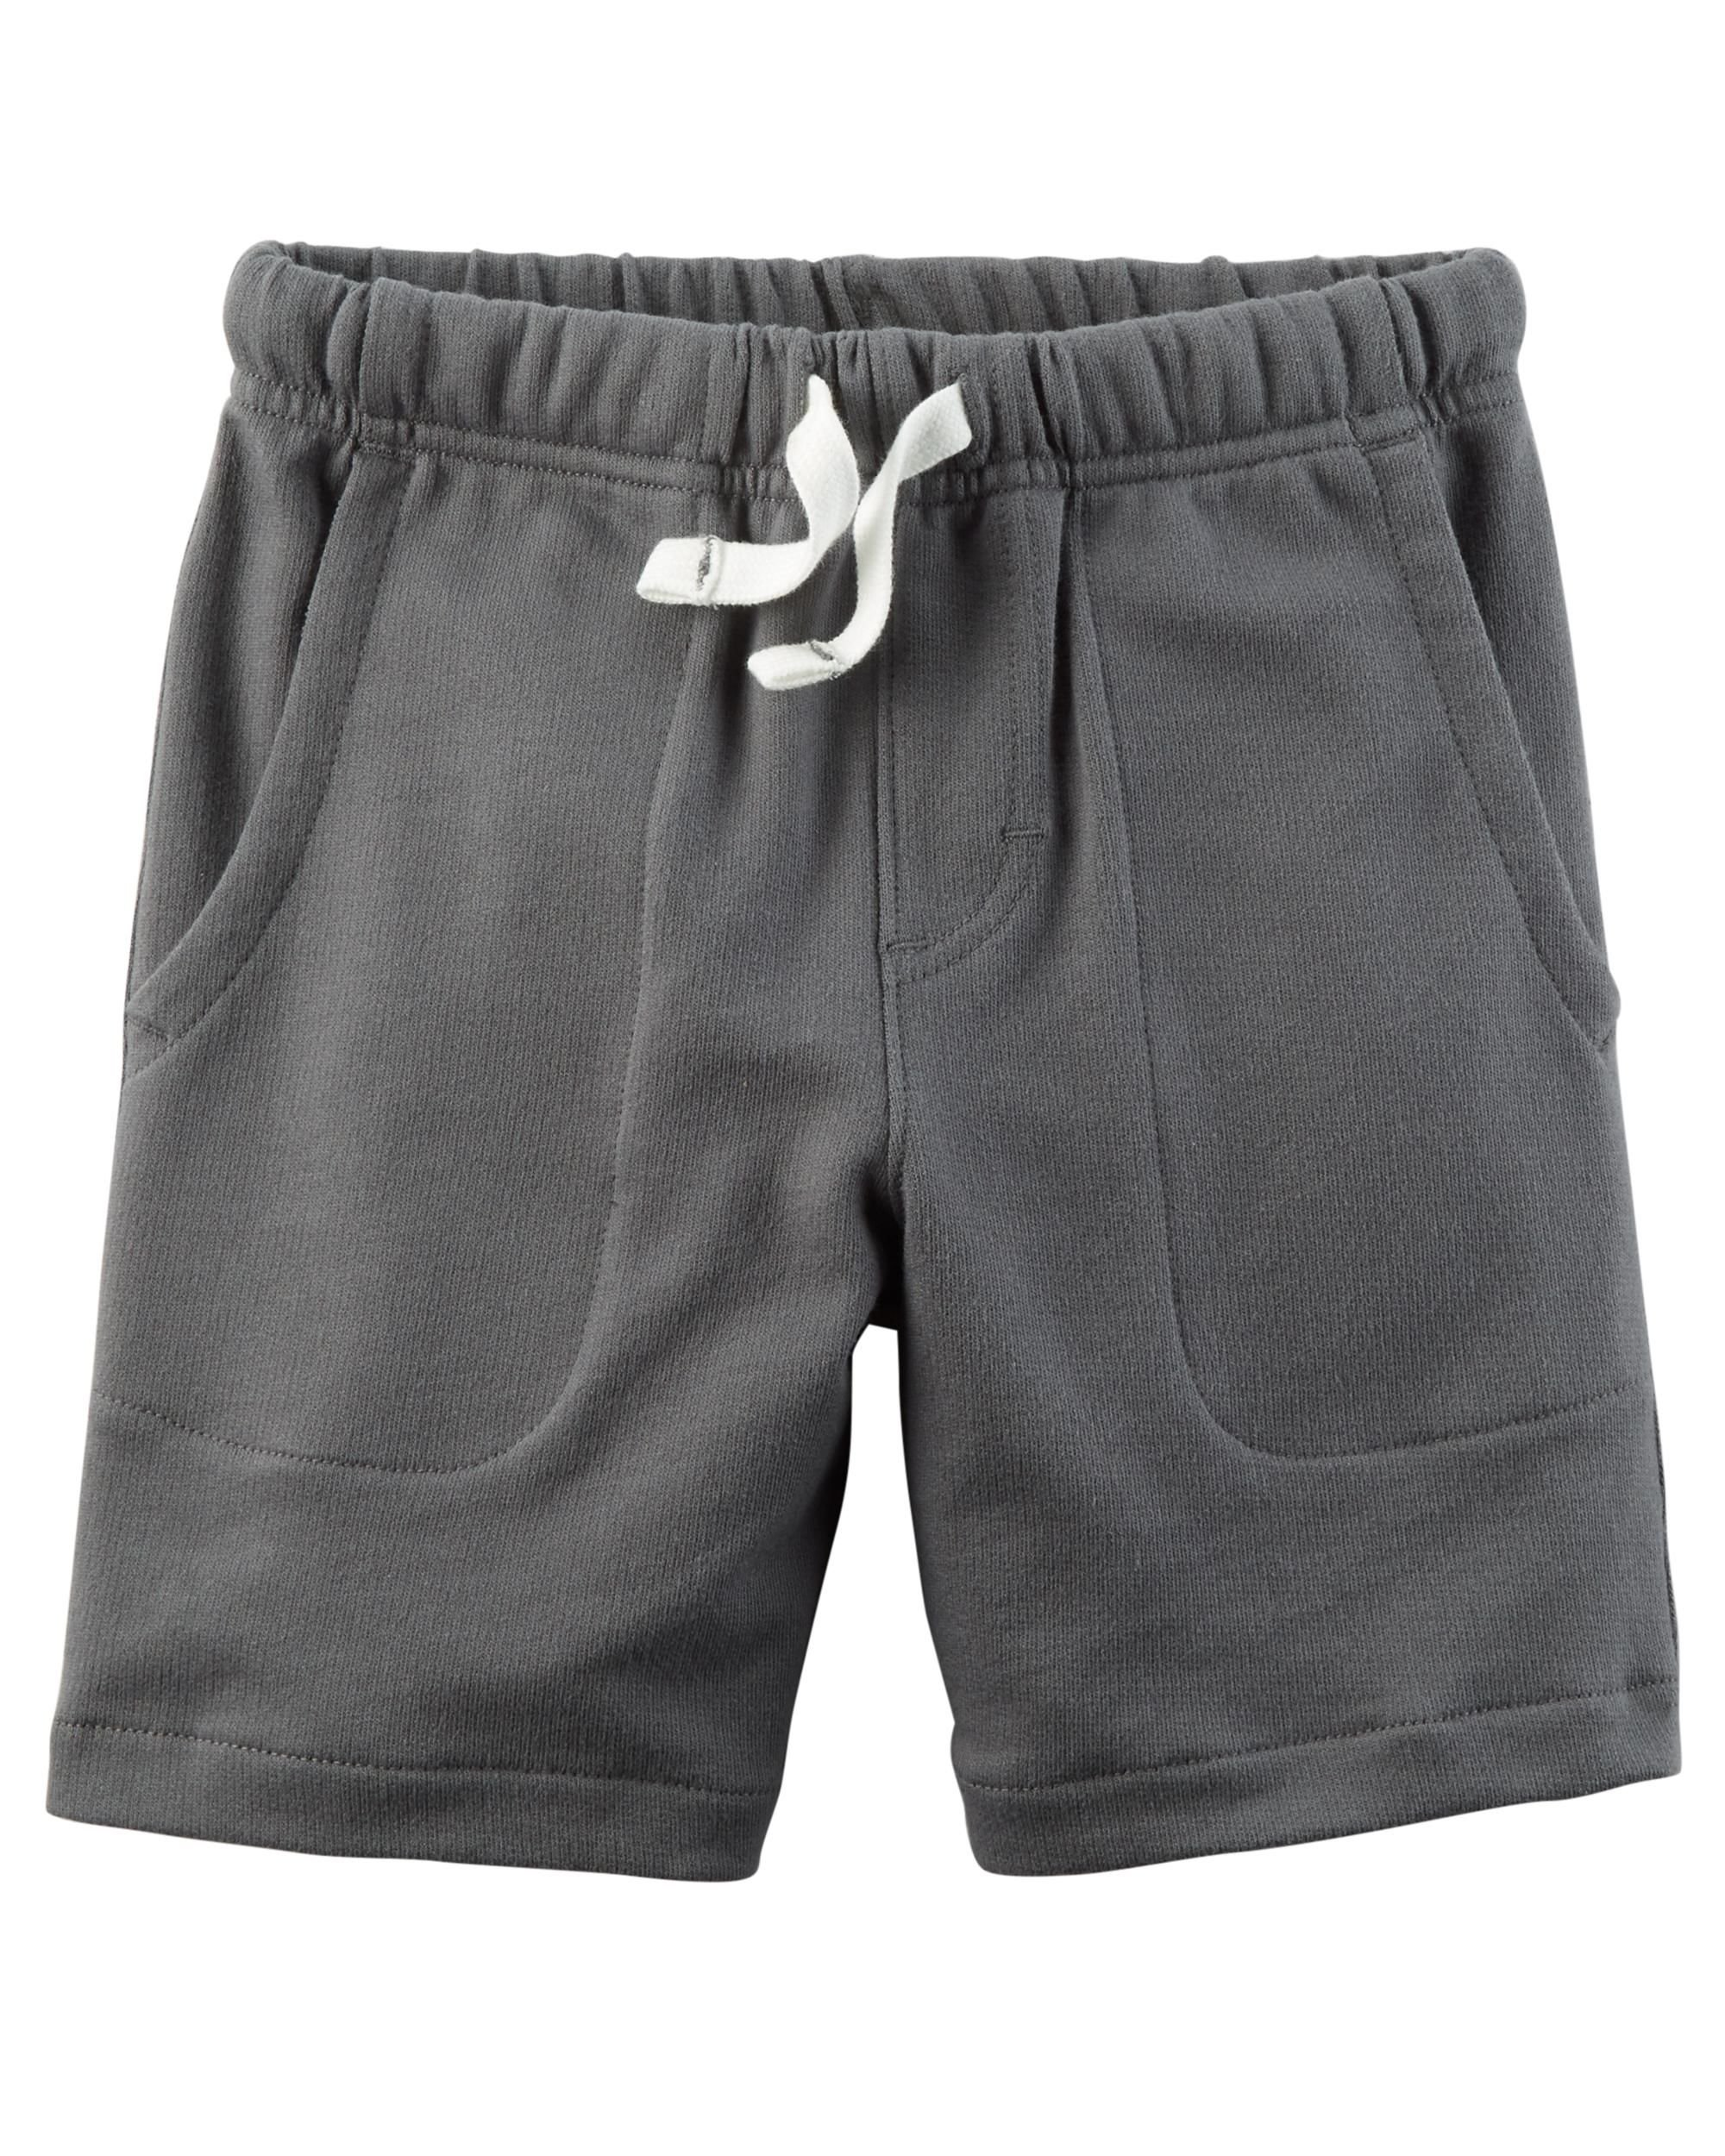 Carter's Set of 2 Boy's Cotton Pull On Shorts Toddler Little and Big Boys (5T, Dark Grey and Navy Blue) by Carter's Baby Clothing (Image #4)